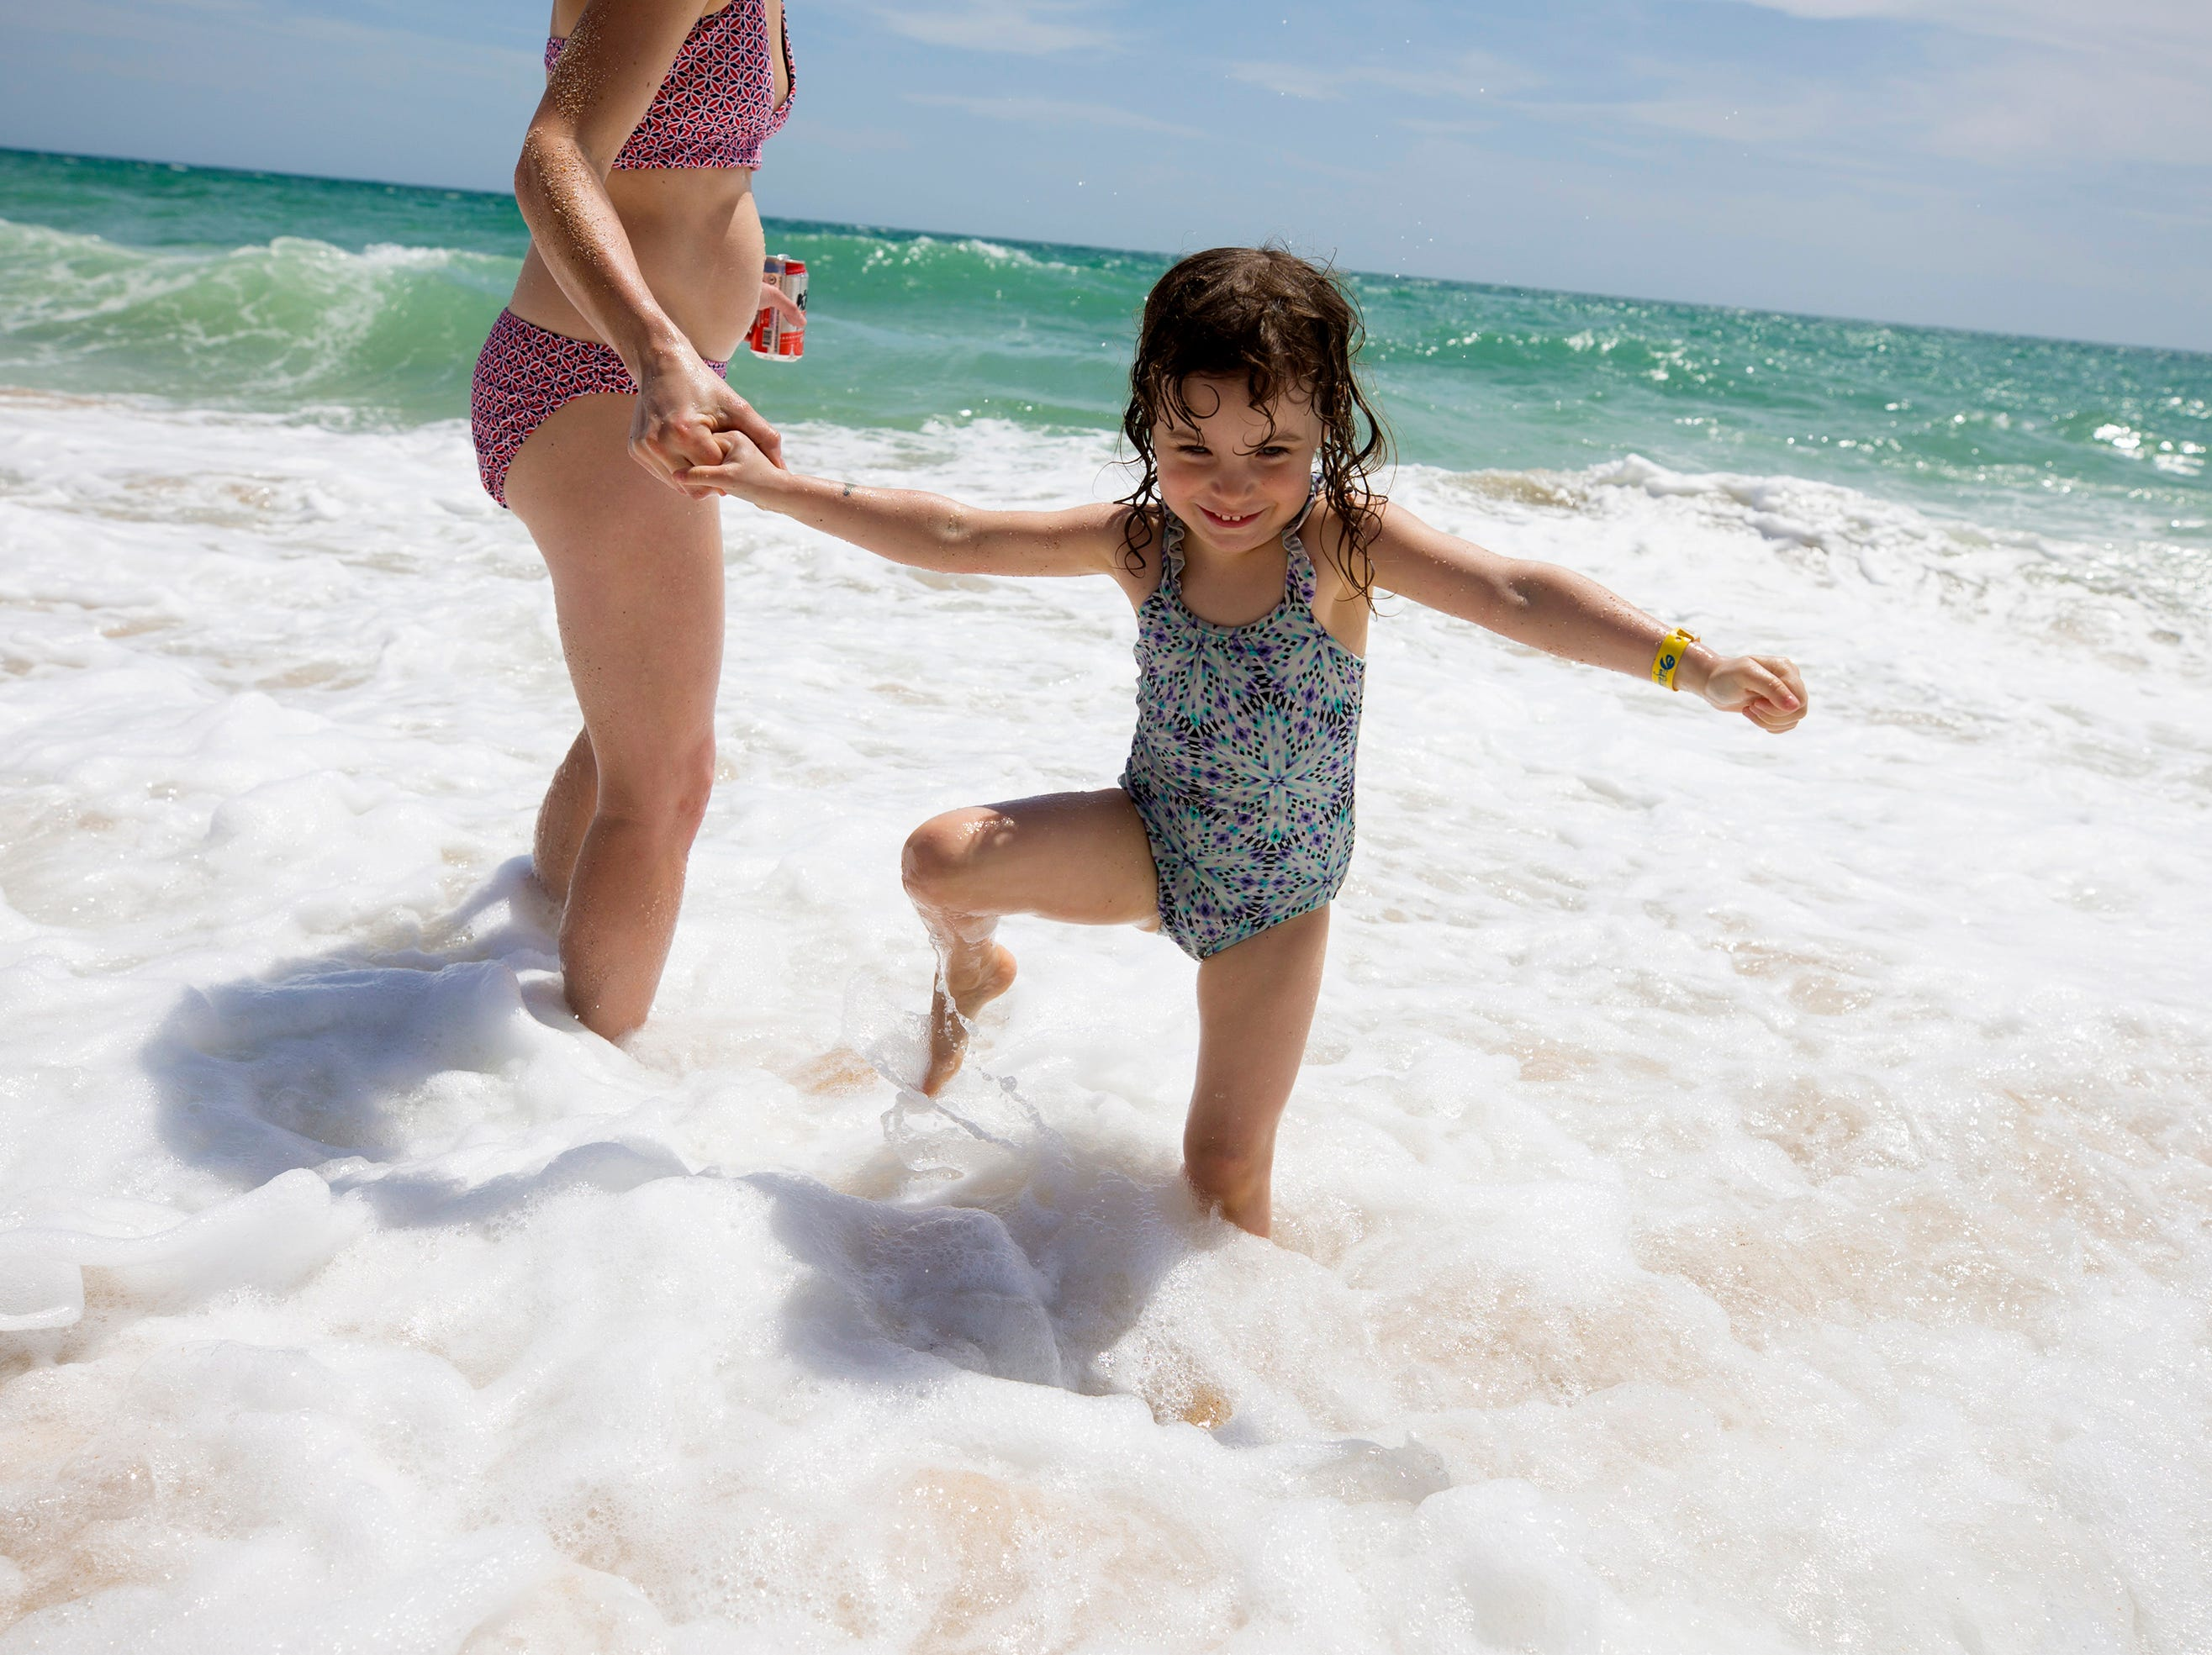 Caroline Belcher, from Vermont, plays with her daughter Olivia Keegan, 3, on Sandy Beach in Puerto Penasco, Mexico.